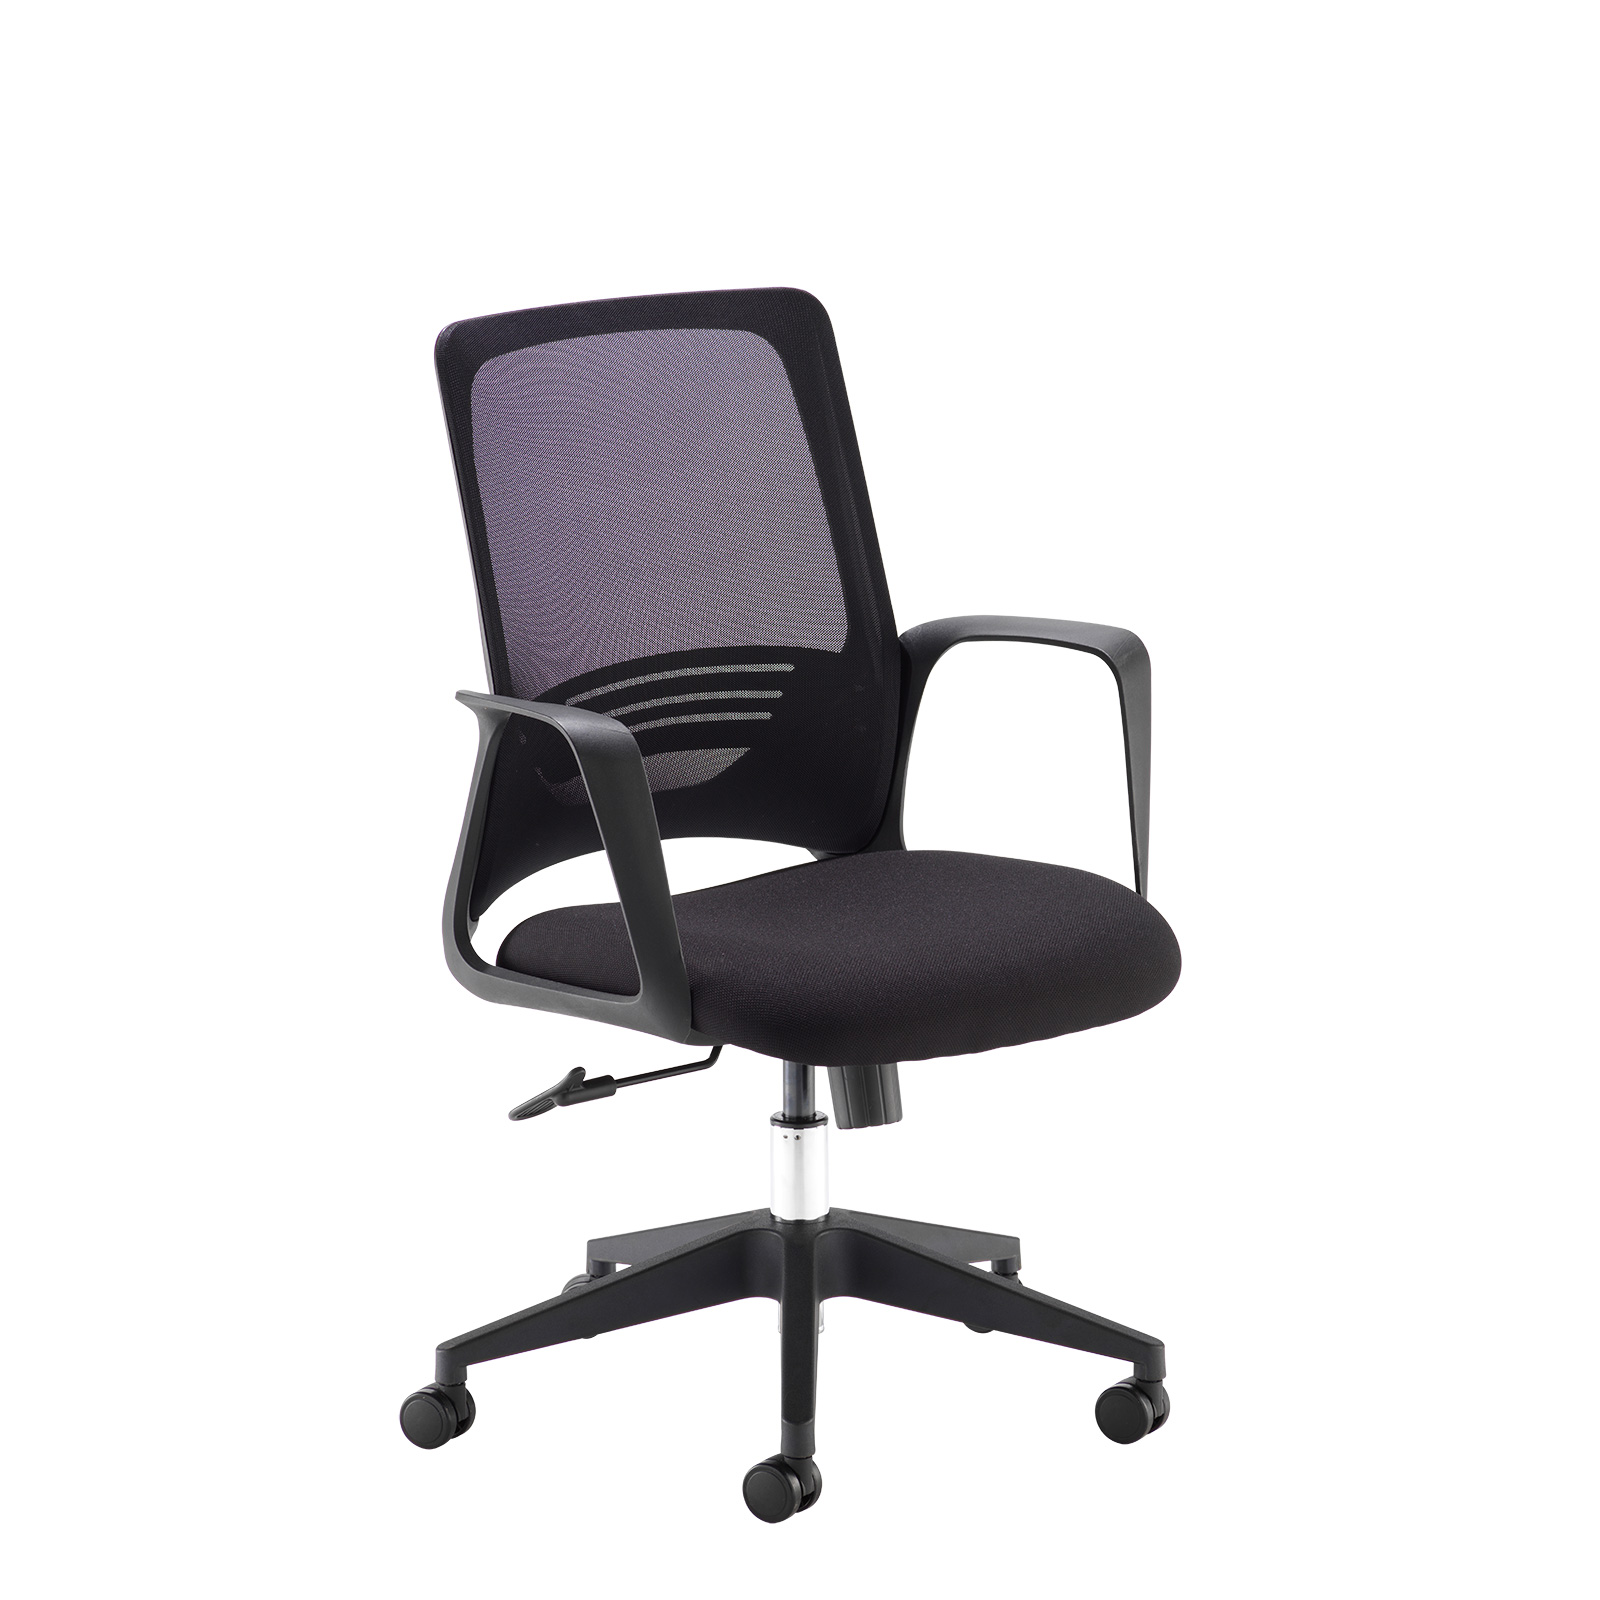 Desks Toto black mesh back operator chair with black fabric seat and black base